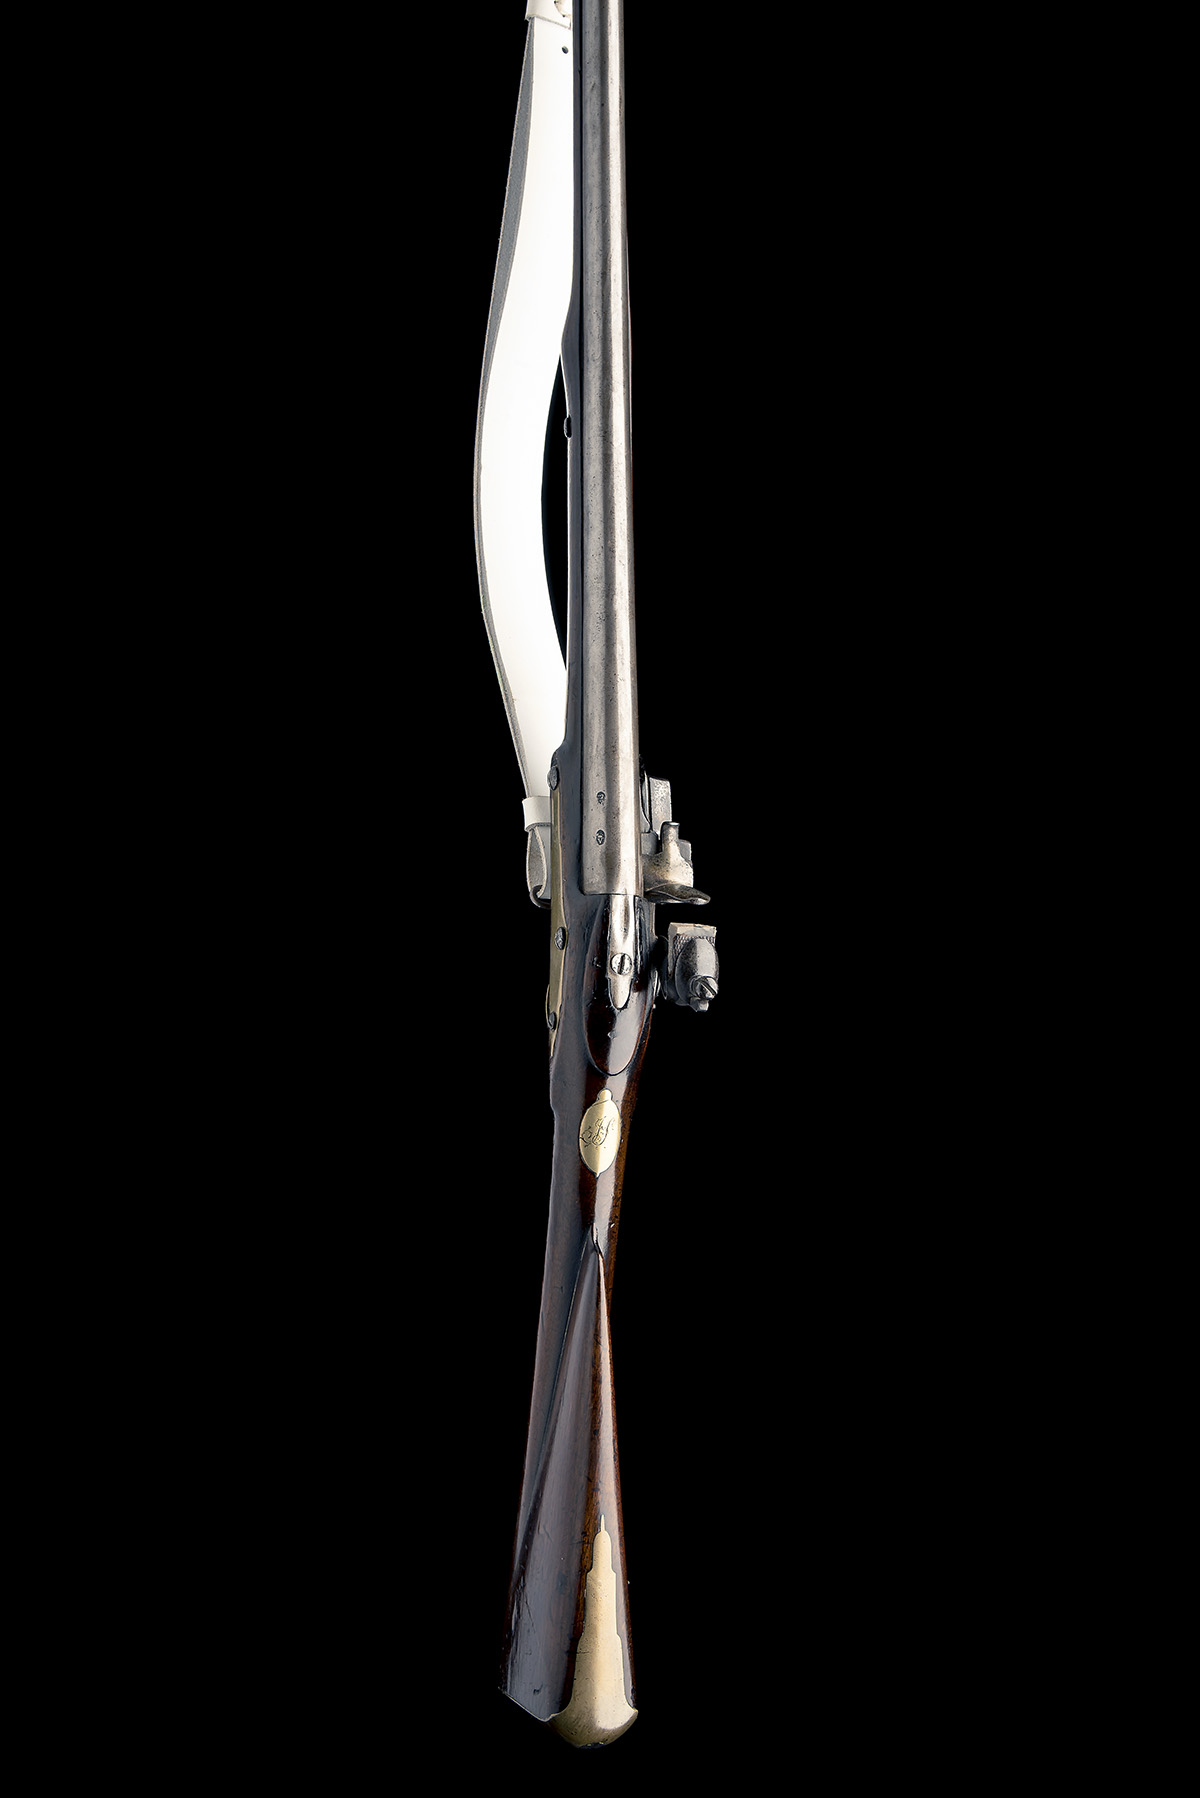 RICHARDS, LONDON A .650 FLINTLOCK MUSKET, UNSIGNED, MODEL 'LIVERY MUSKET', no visible serial number, - Image 3 of 8